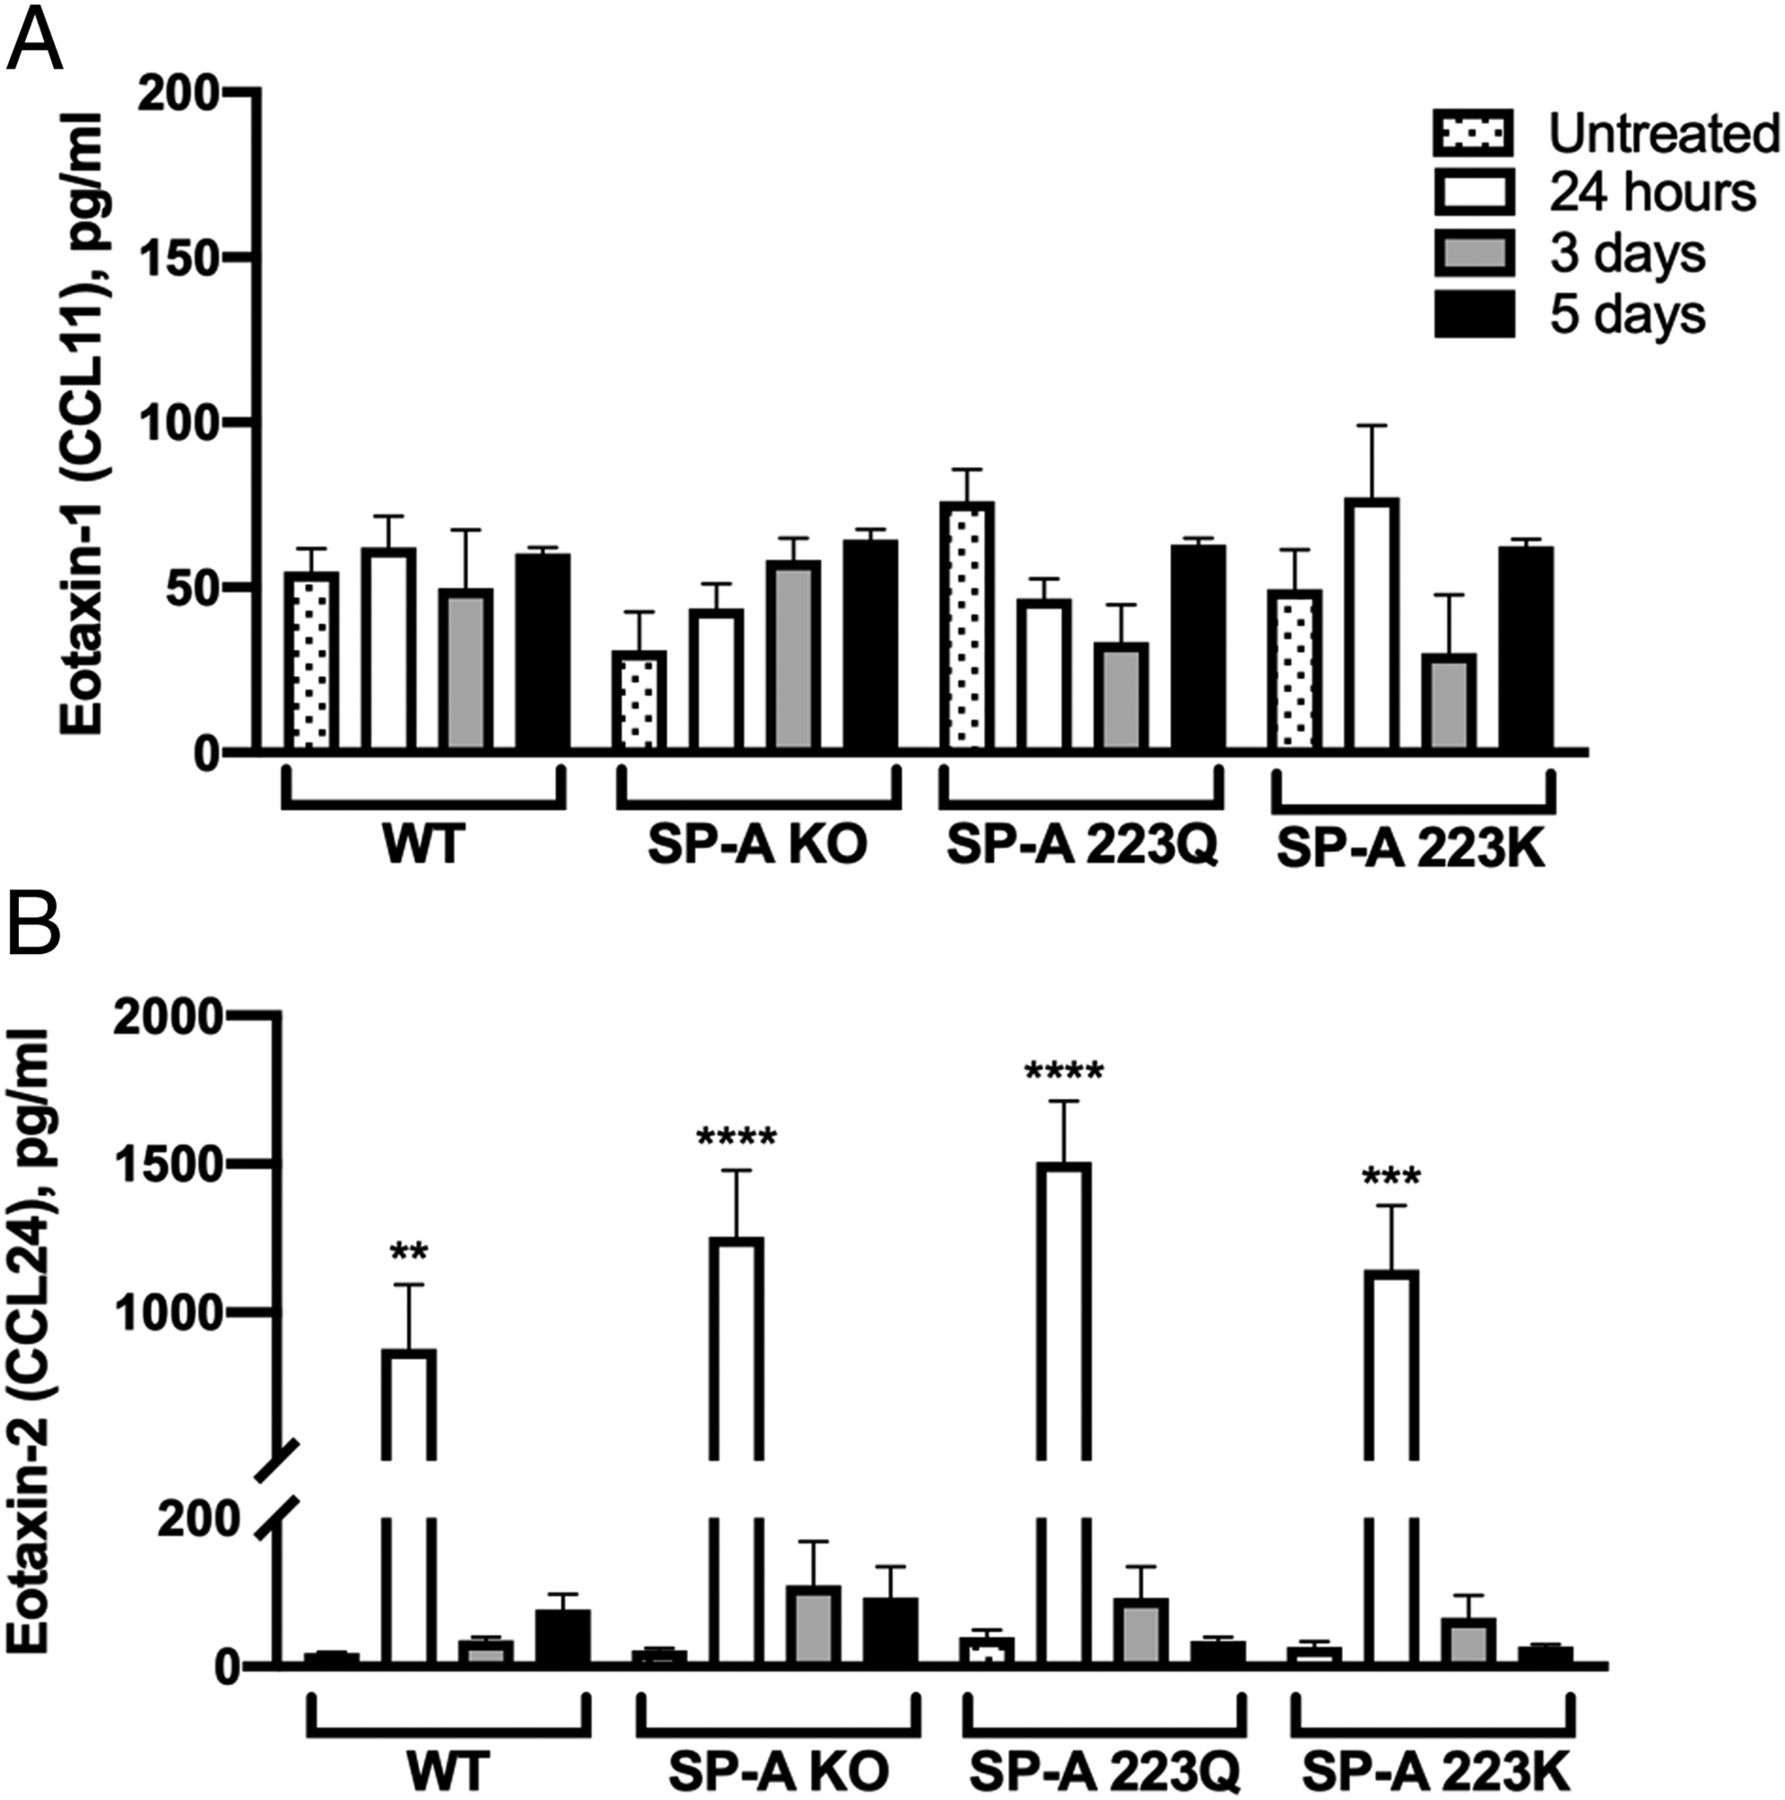 Genetic Variation in Surfactant Protein-A2 Delays Resolution